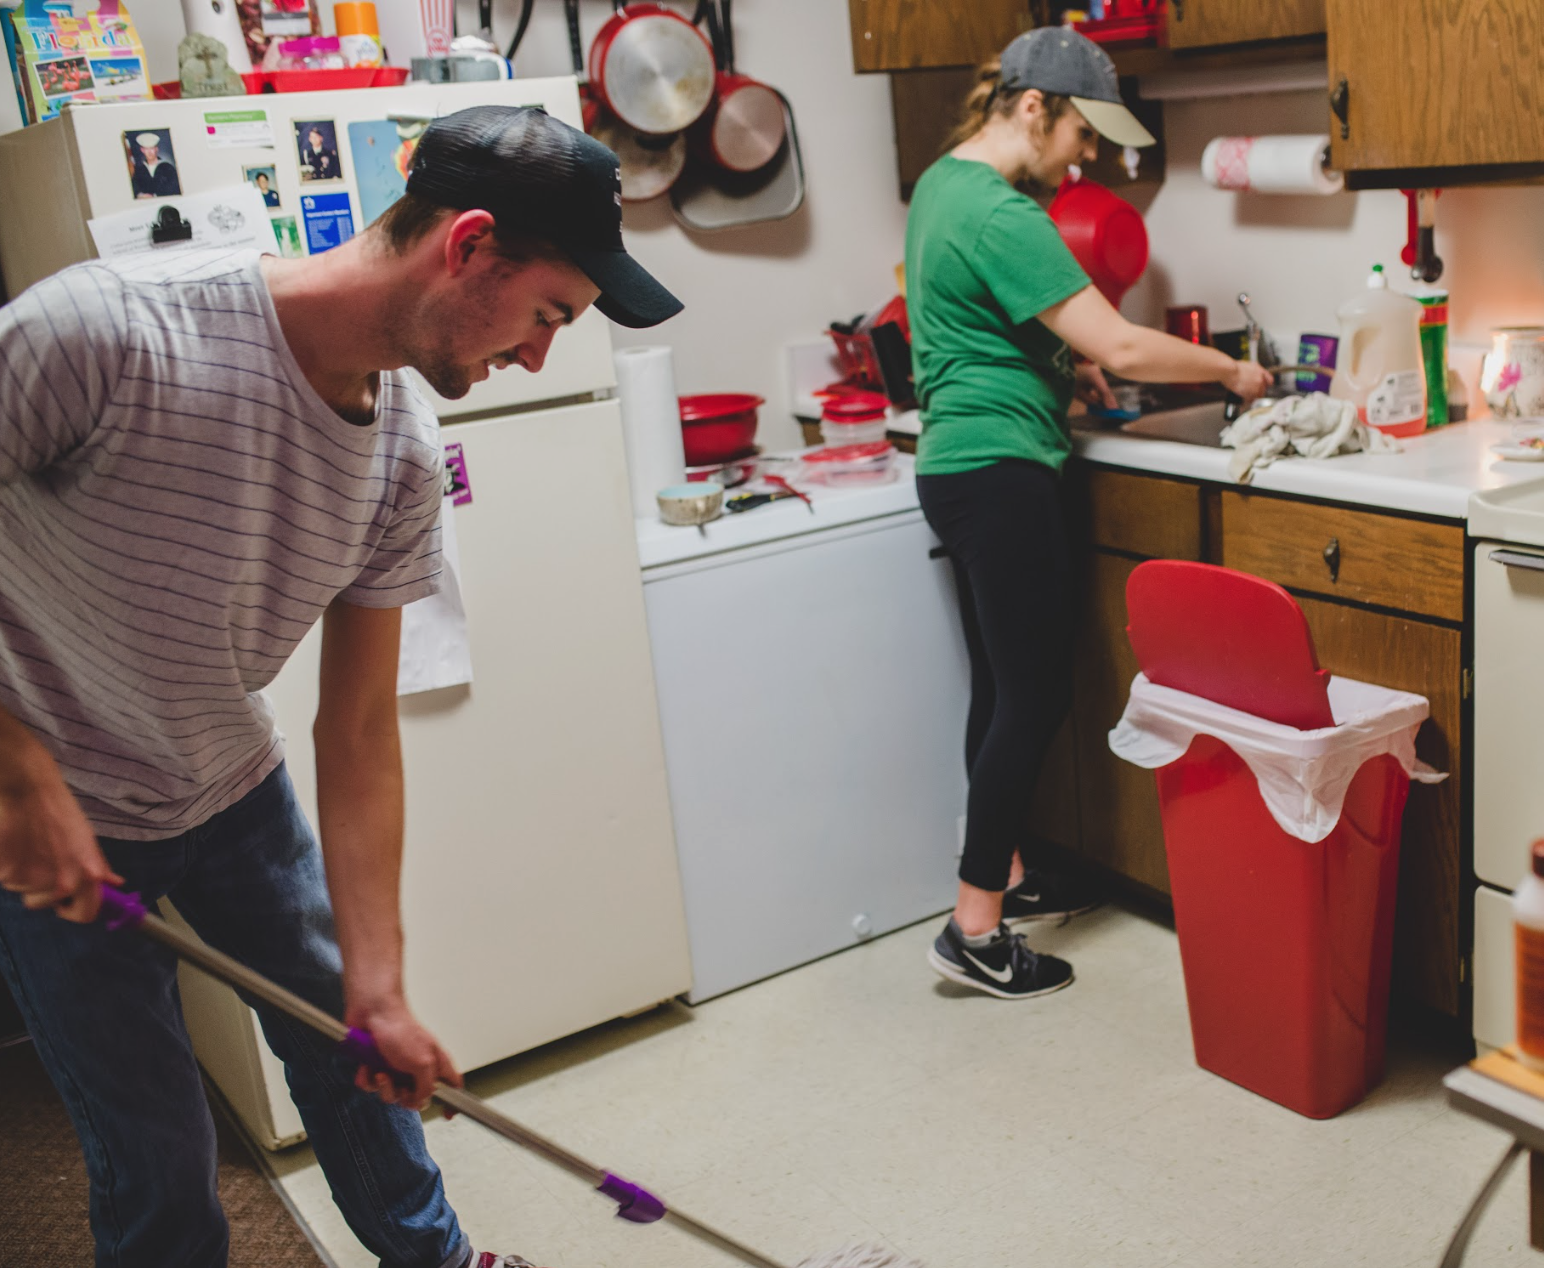 Students cleaned apartments of elderly and disabled residents at Trevecca Towers. They also took the time to listen to residents as they shared stories of their families and lives.